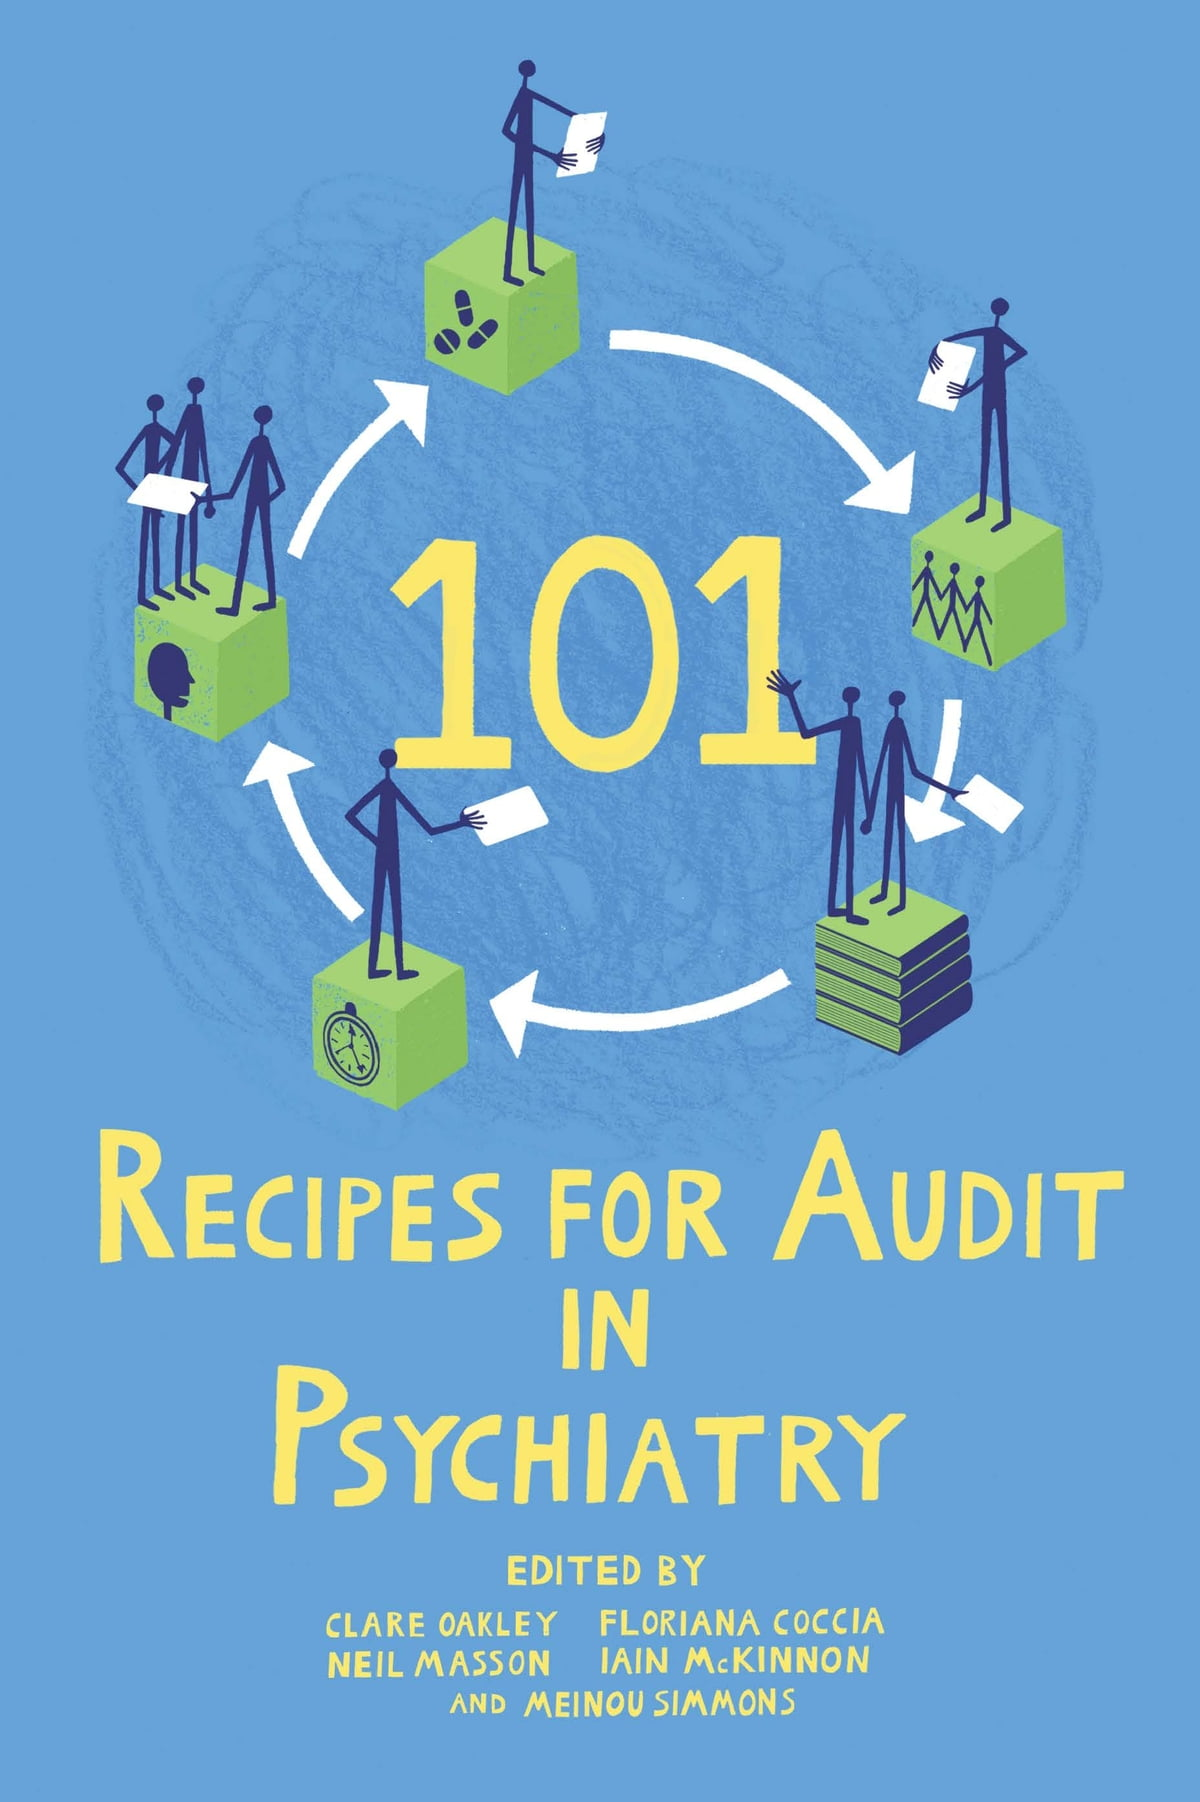 101 Recipes for Audit in Psychiatry eBook by - 9781908020642 | Rakuten Kobo